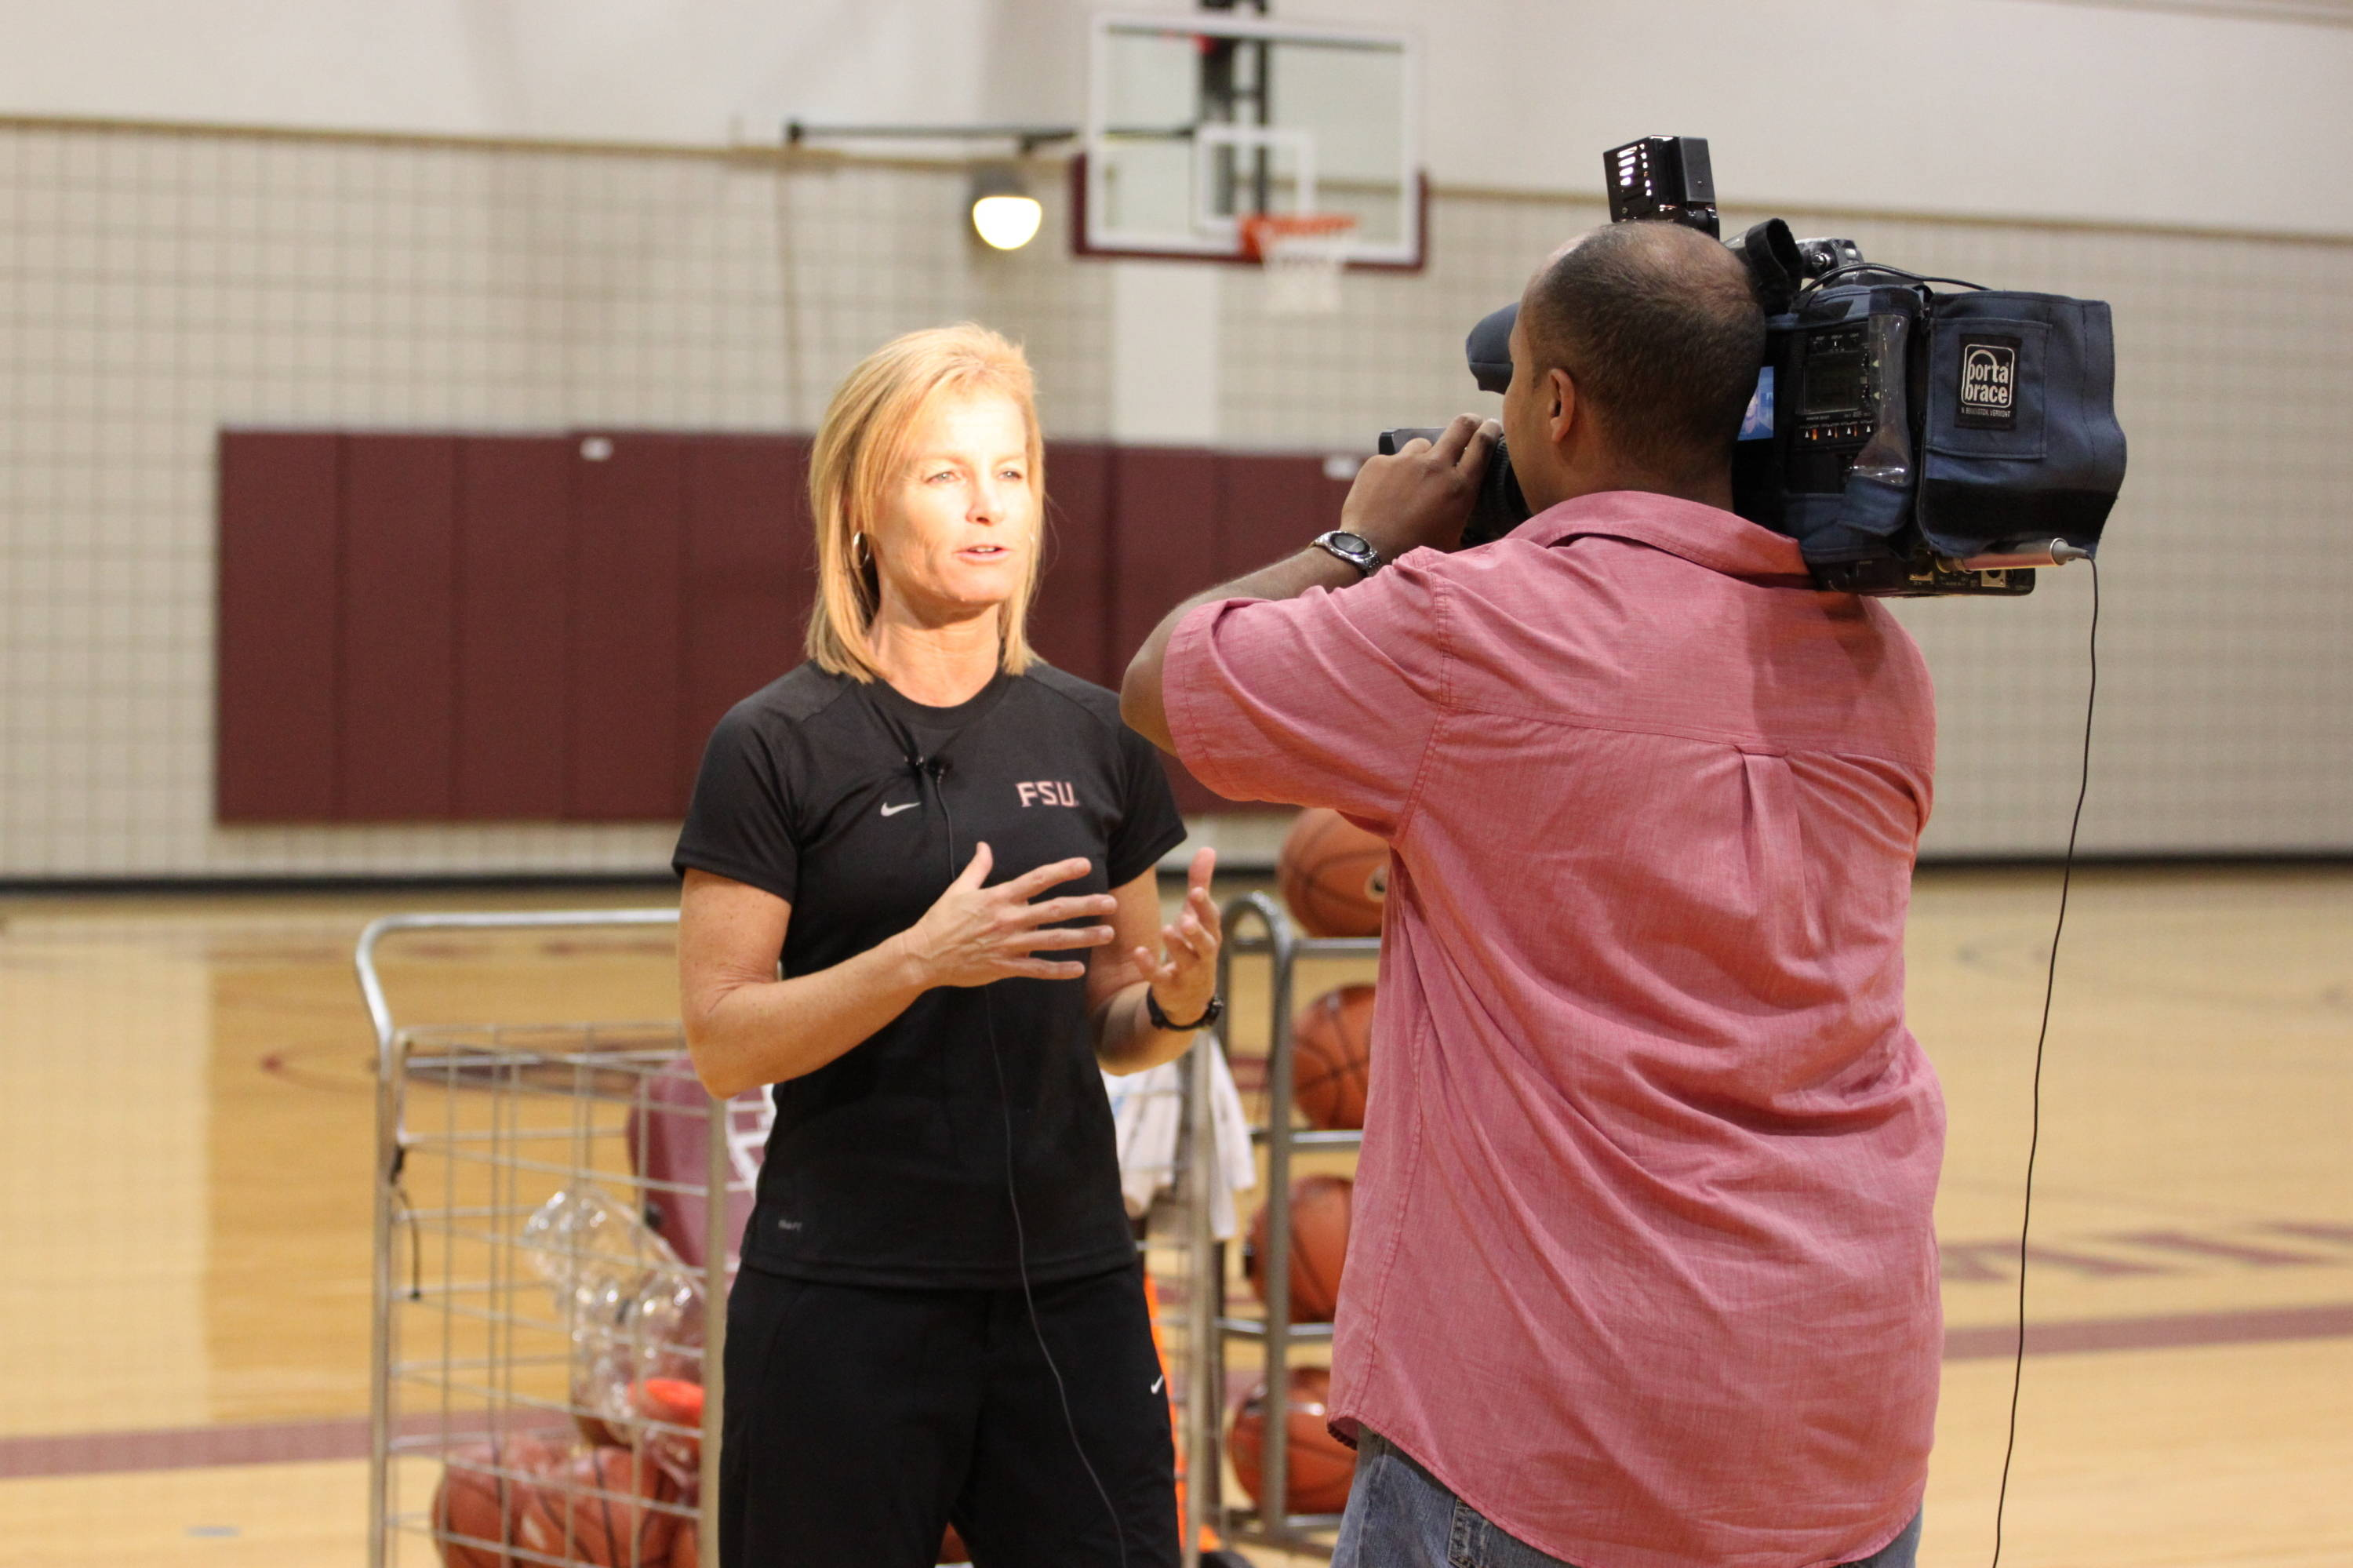 Head coach Sue Semrau met with the media following practice to discuss the excitement surrounding the new season.